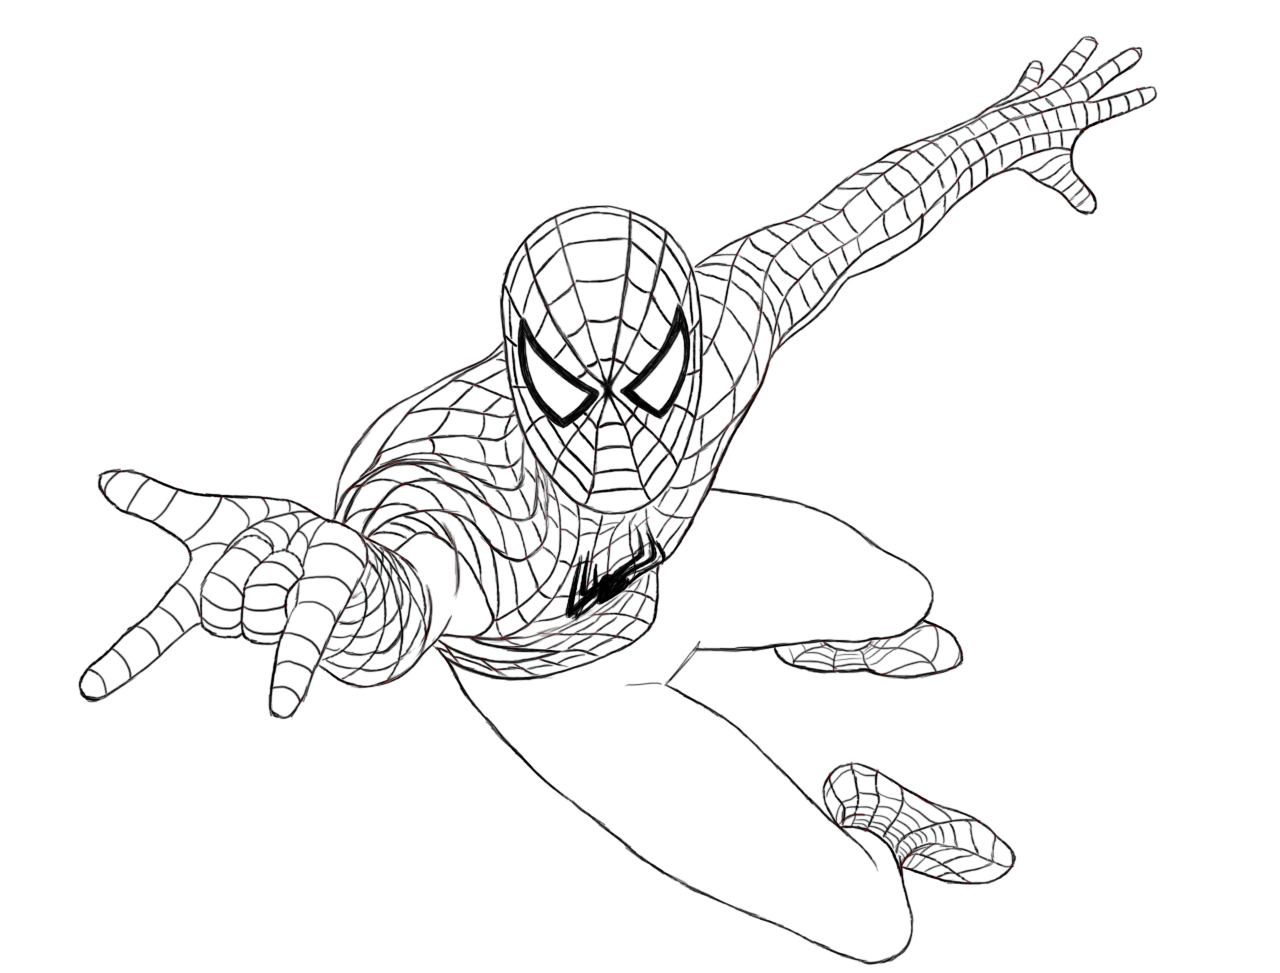 1280x973 Homey Spiderman Drawing Book Colouring Pics Spider Man Coloring